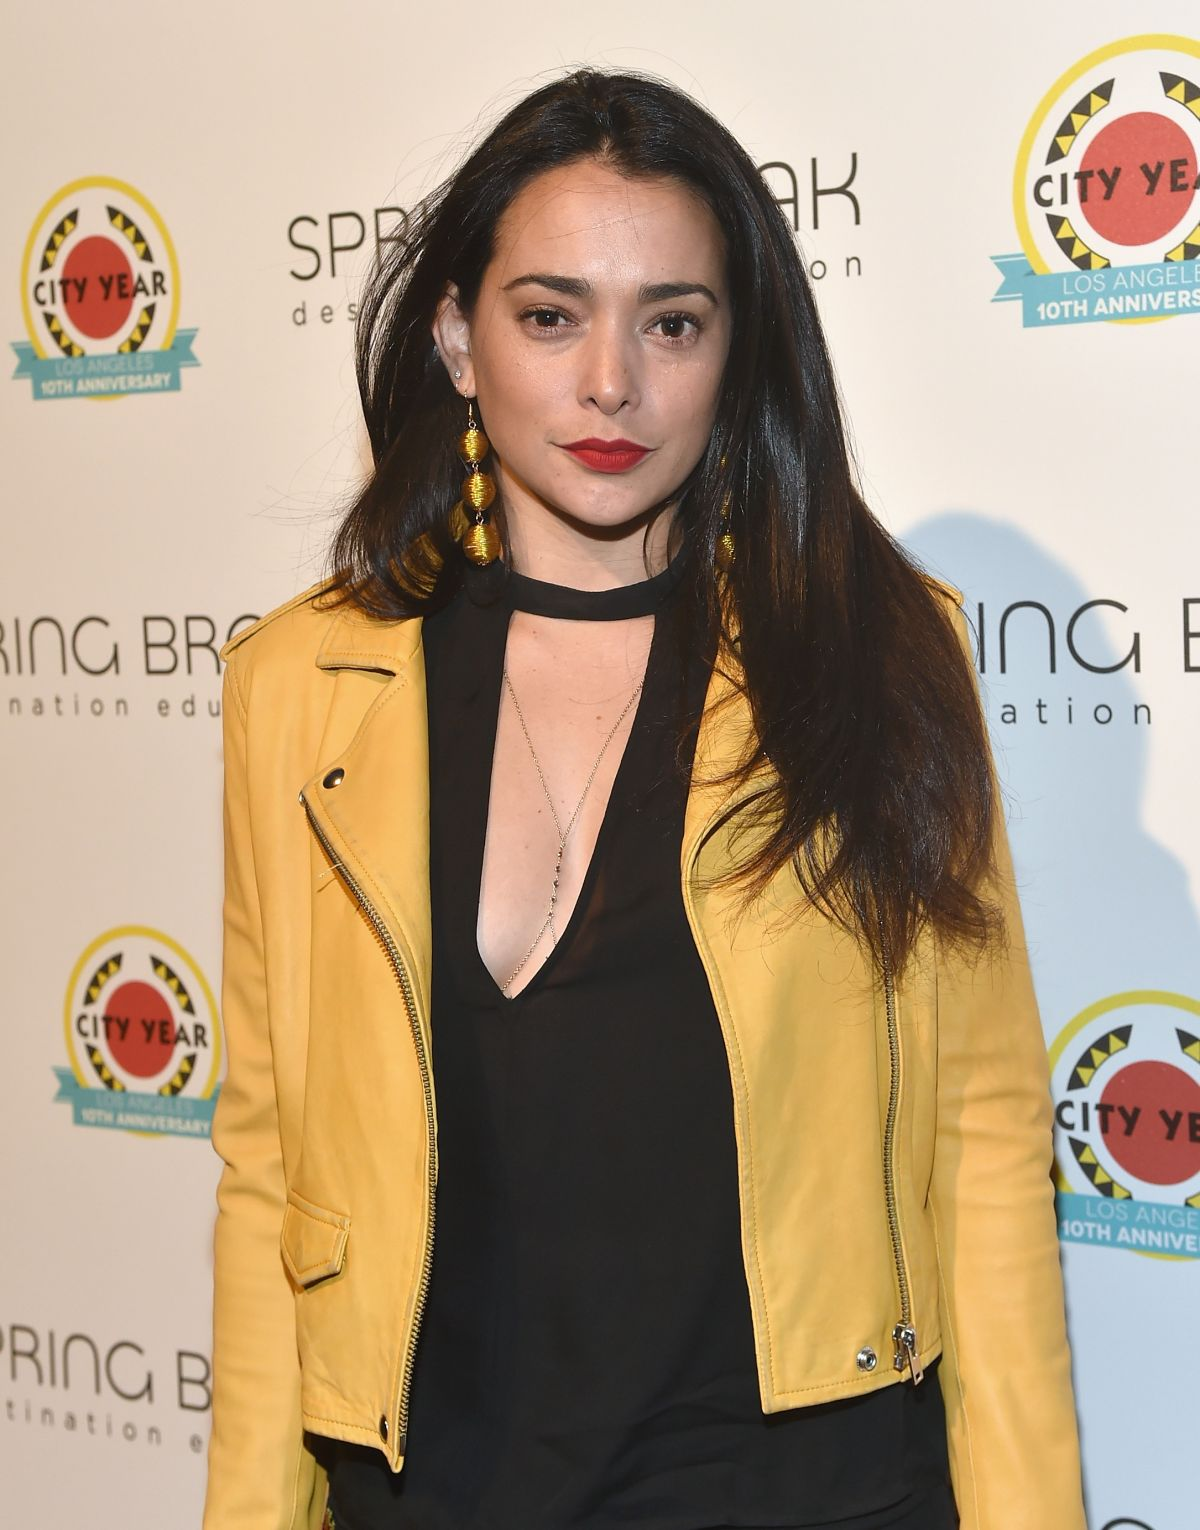 NATALIE MARTINEZ at City Year Los Angeles Spring Break in Los Angeles 05/06/2017